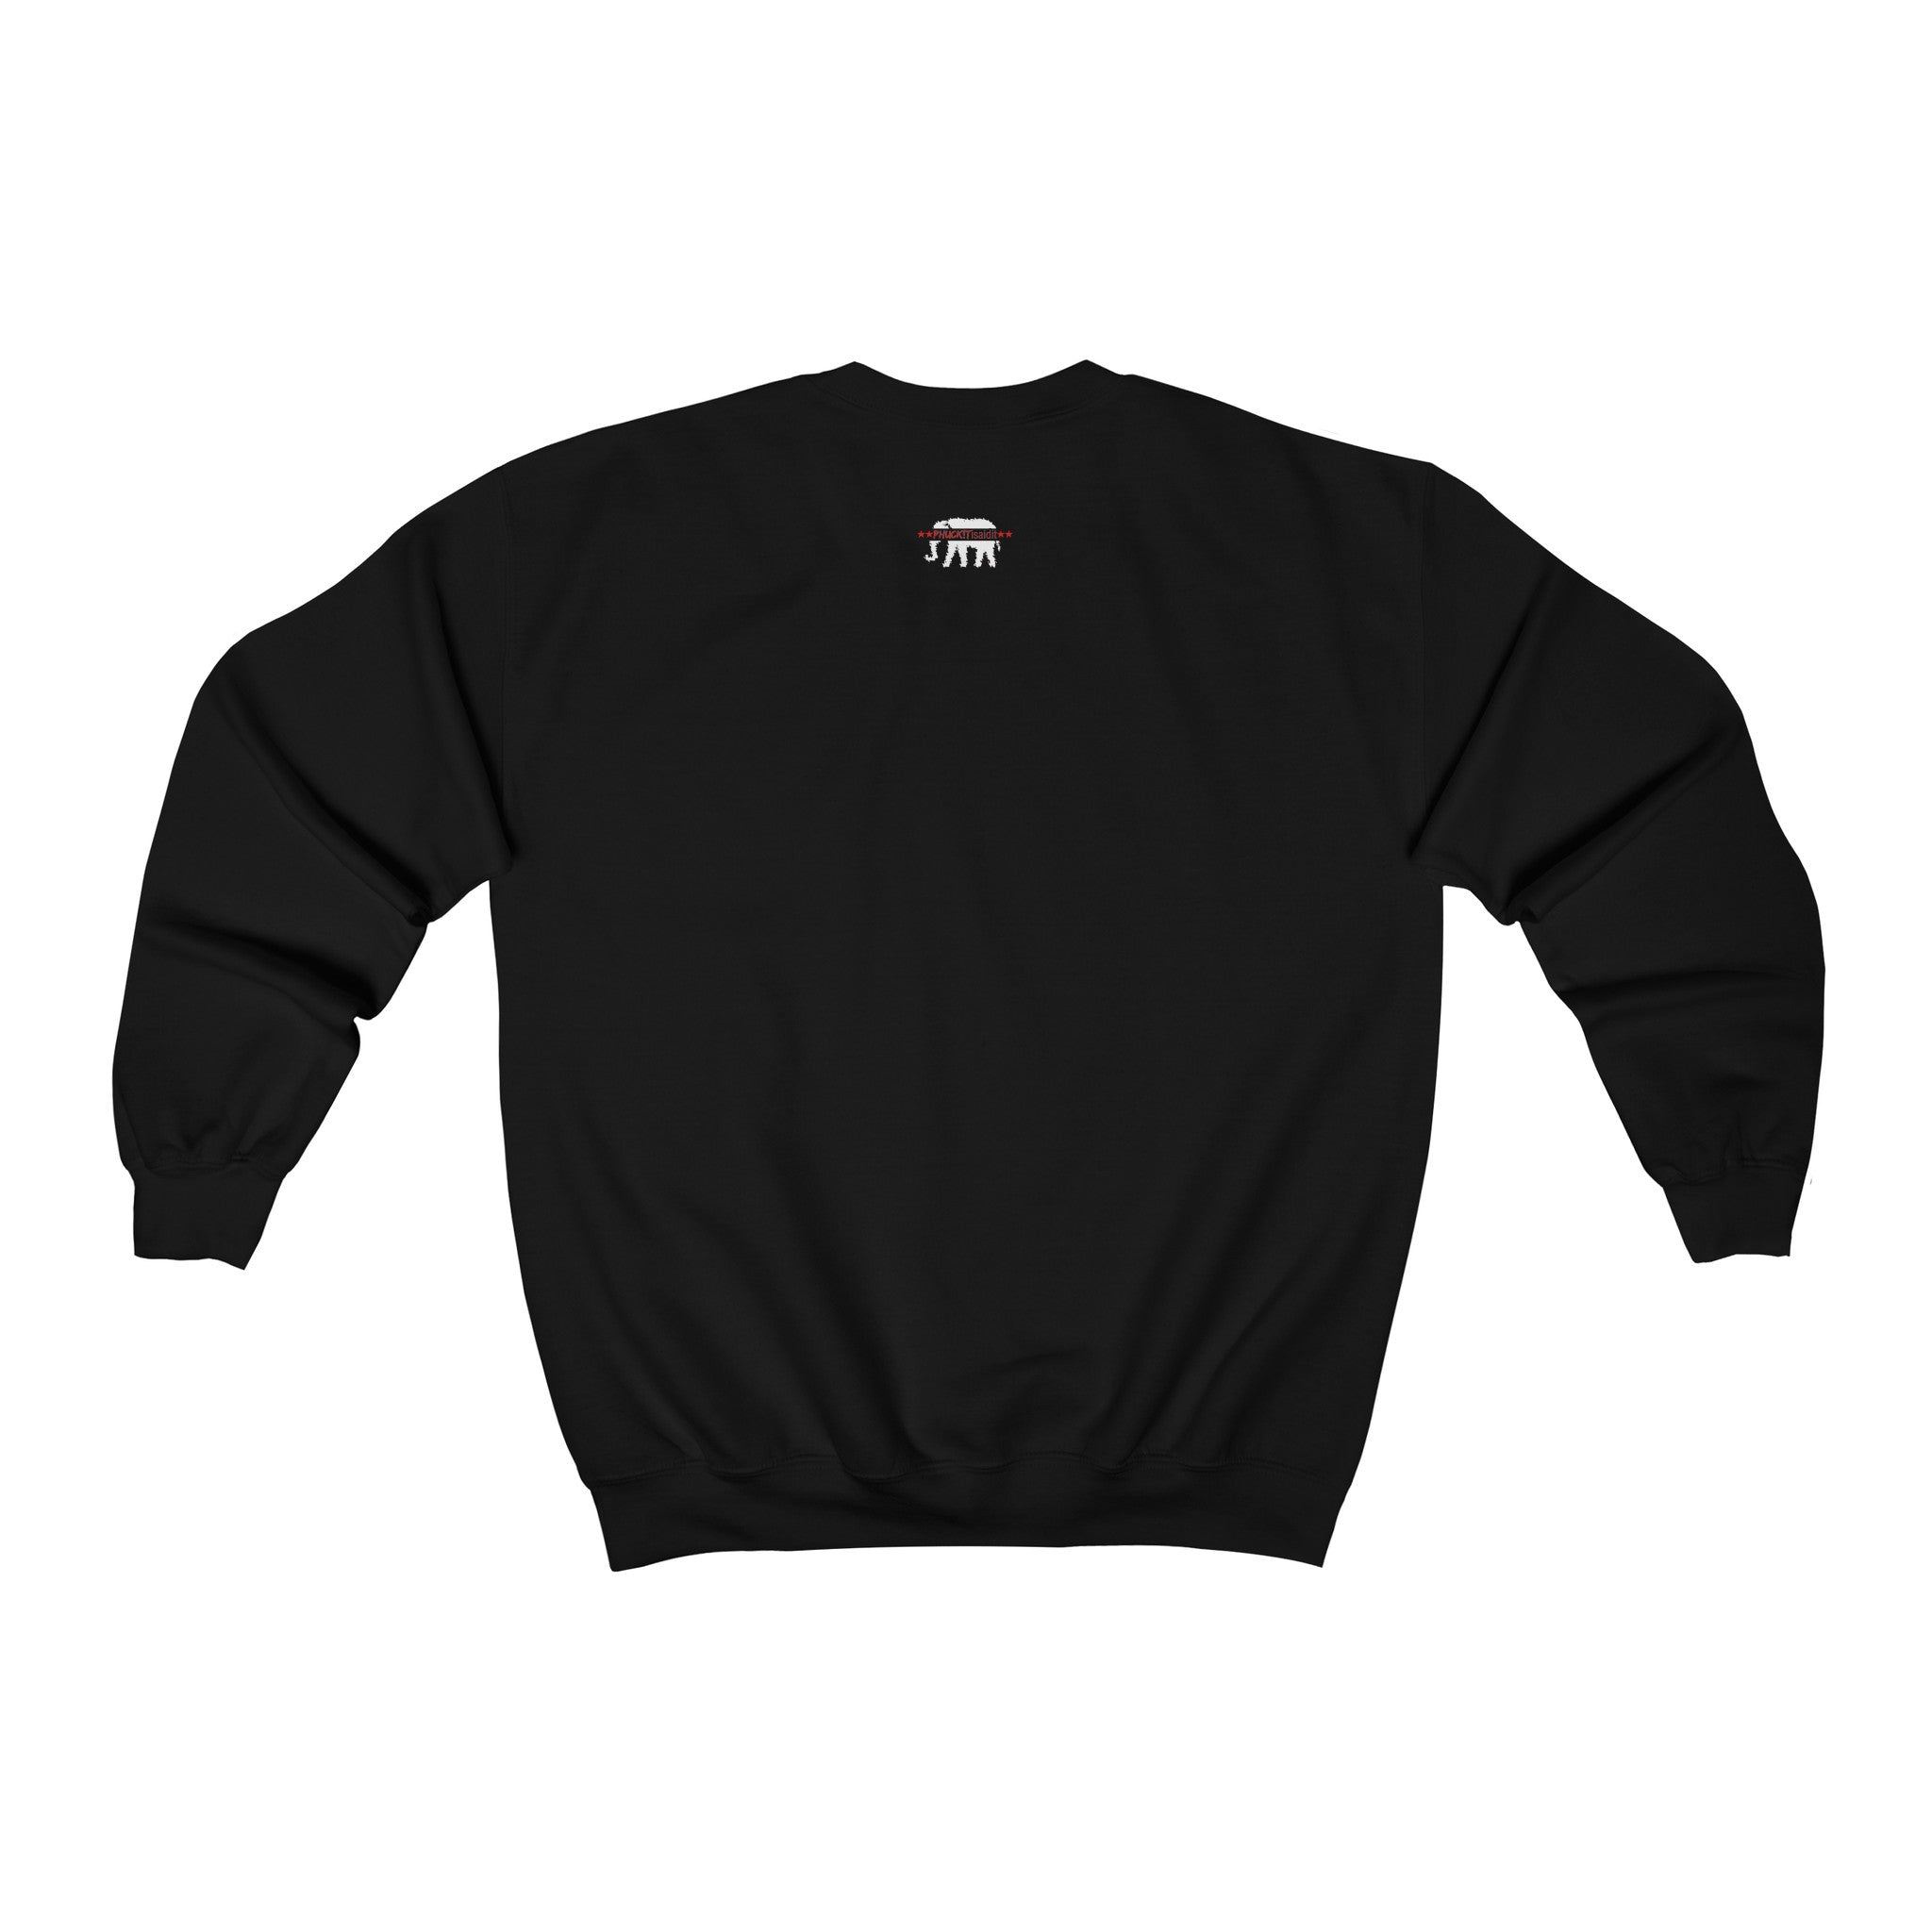 Equity over Equality men's Crewneck Sweatshirt